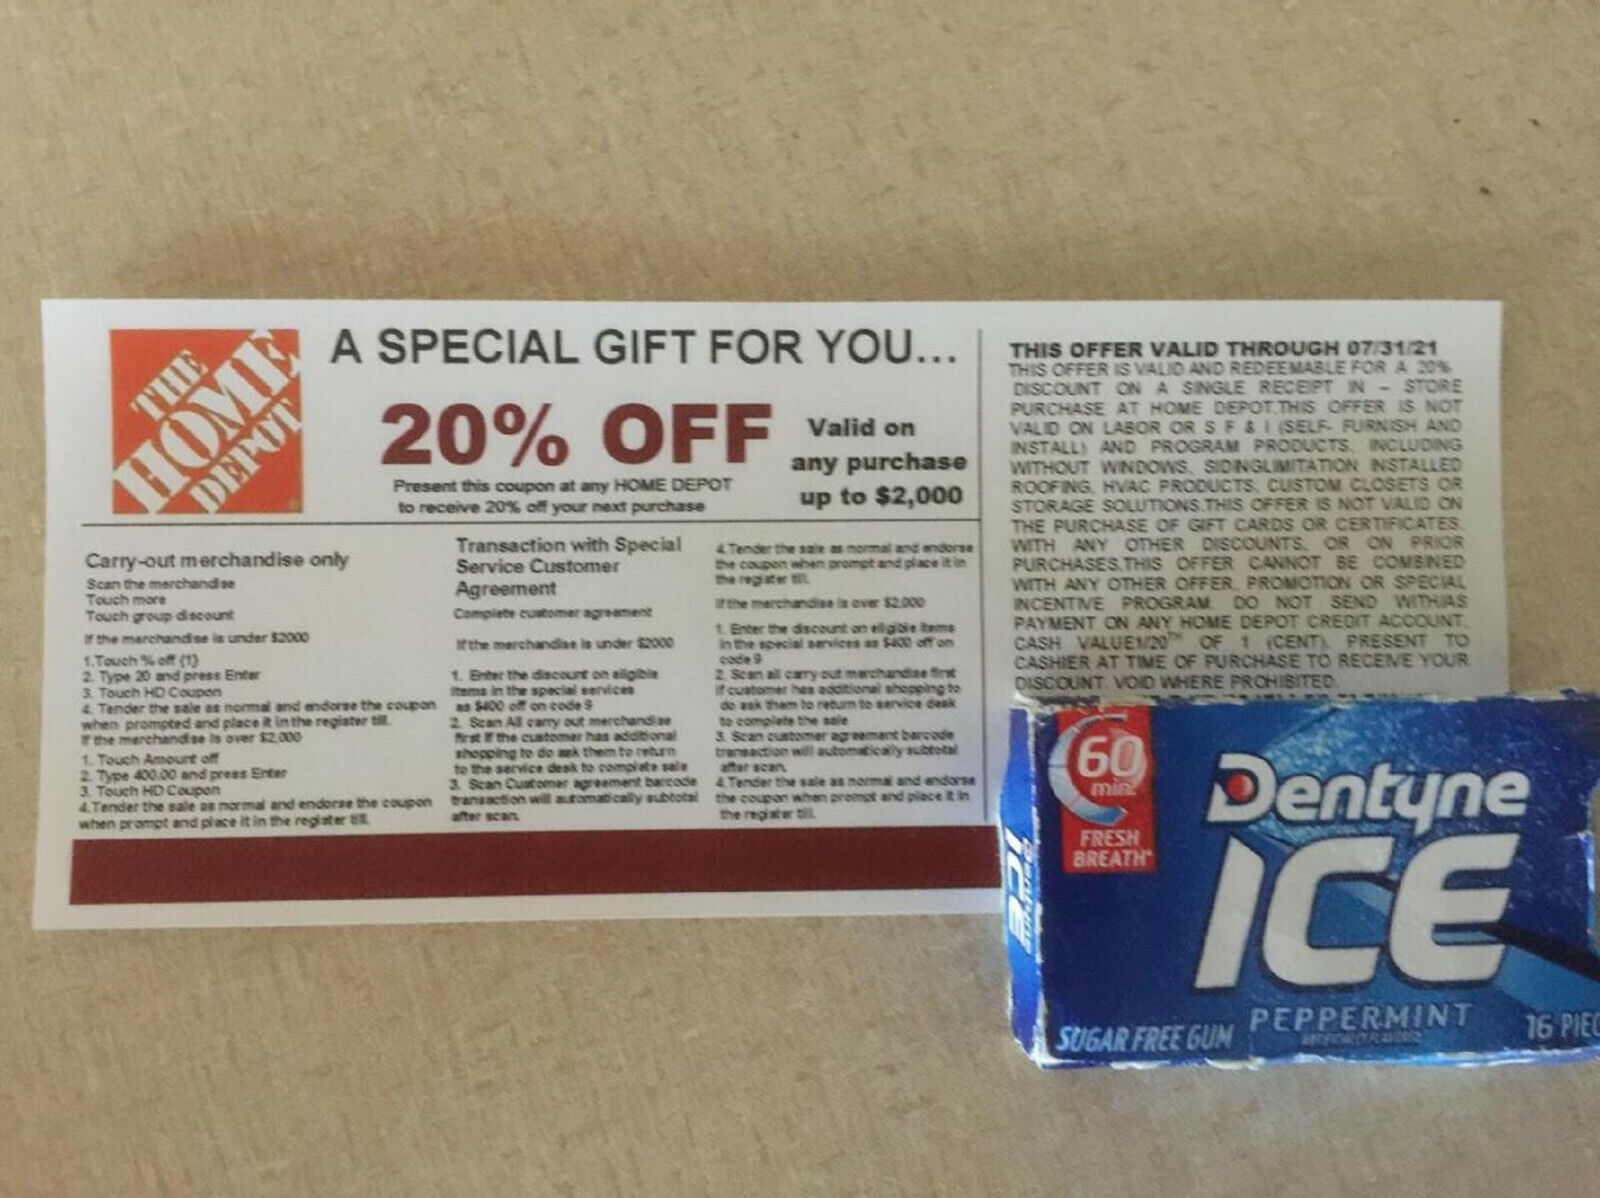 4 20 OFF HOME DEPOT Competitors Coupons Exp 07/31/21 - $20.00